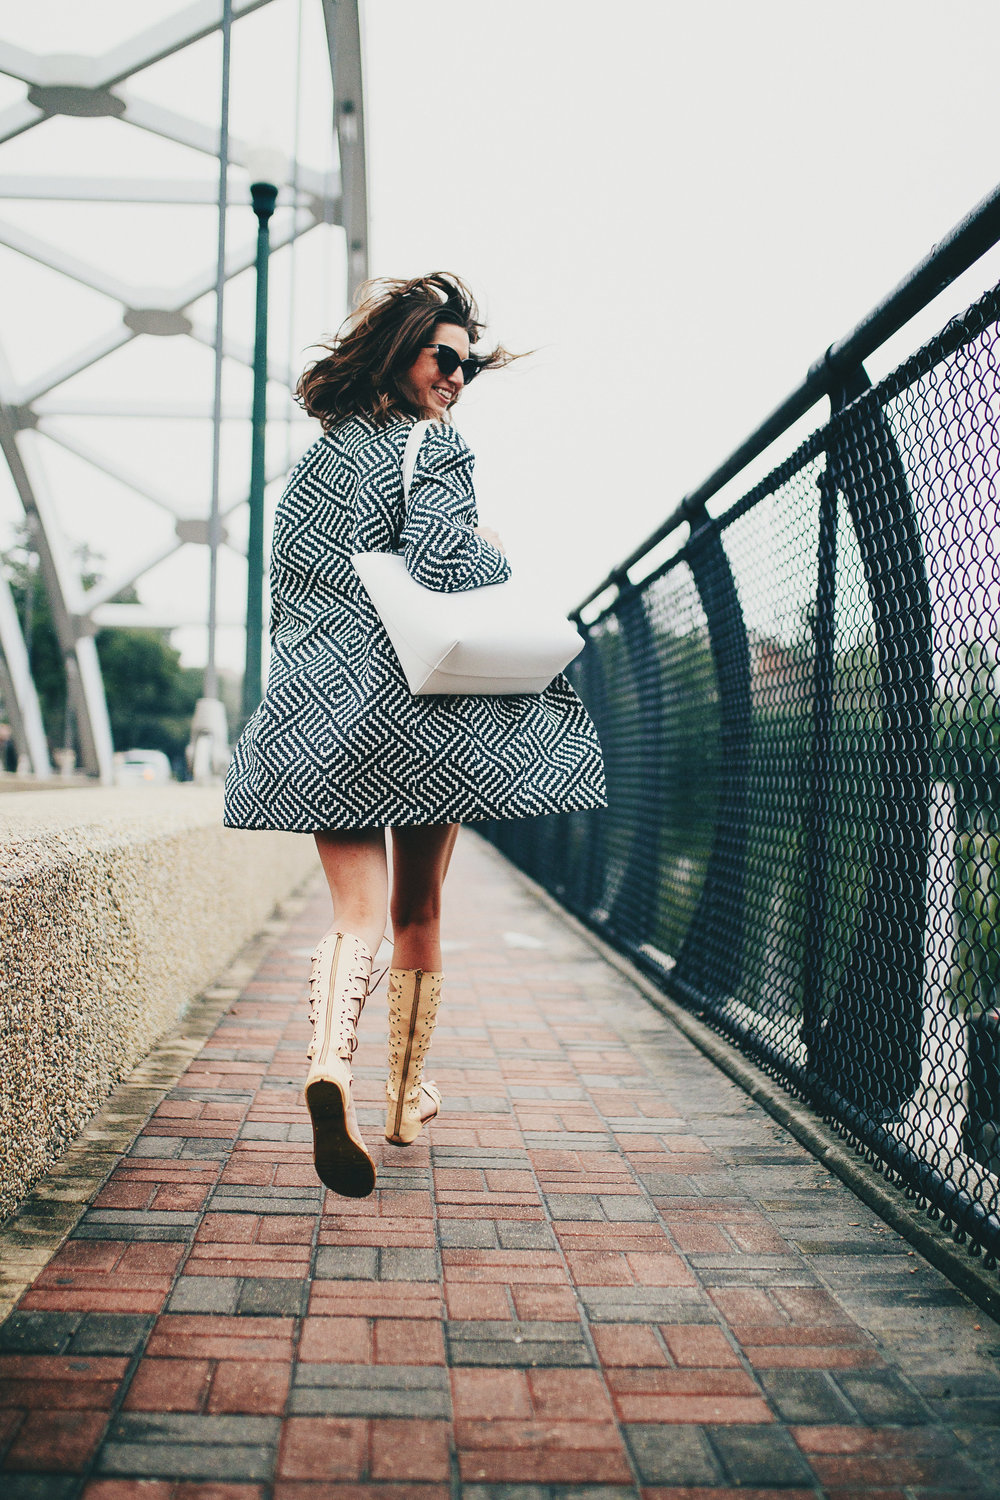 Alice + Olivian patterned coat with lace-up goddess sandals